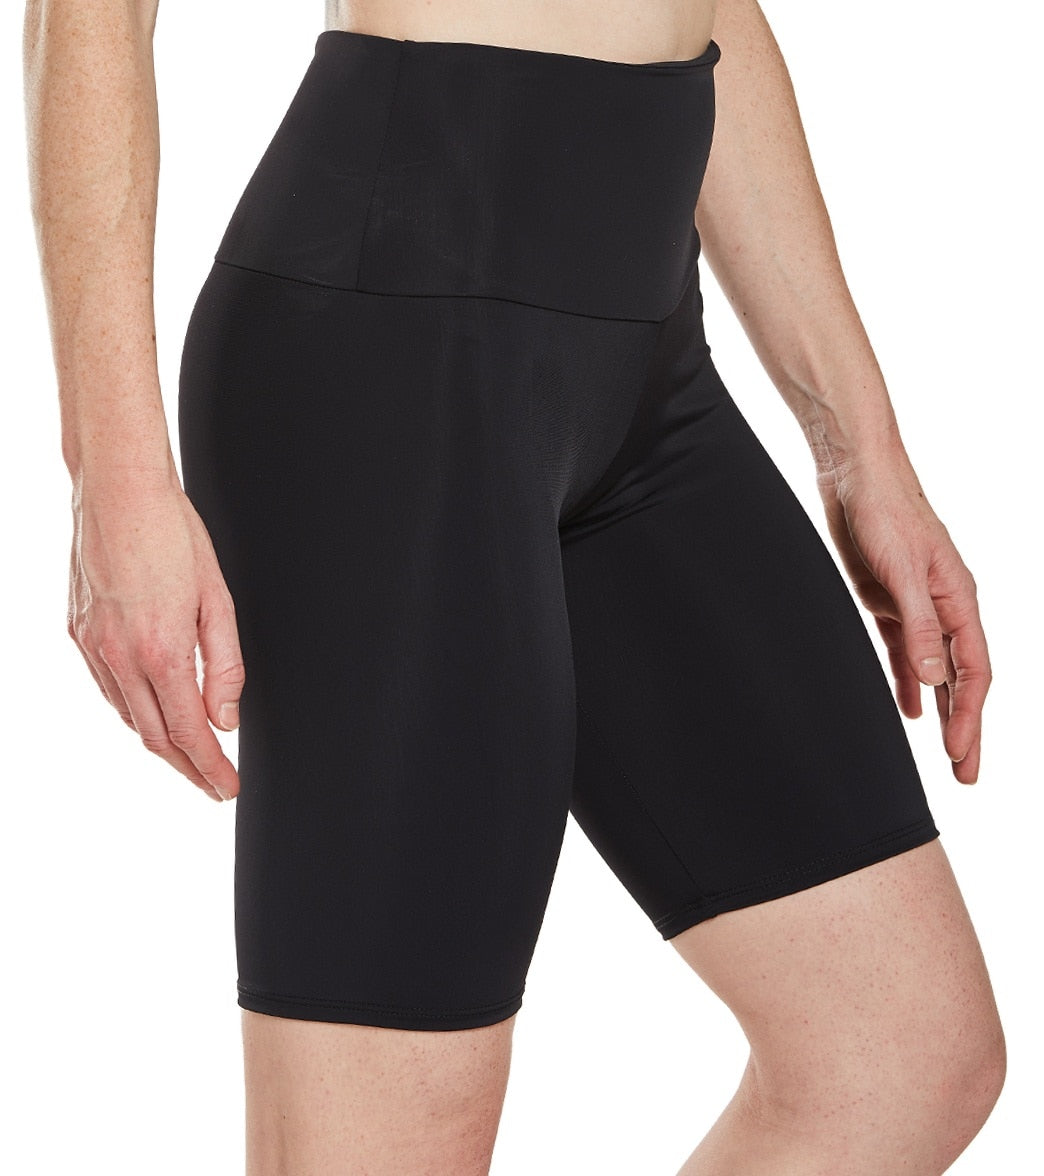 """Cycling TNNZEET Biker Shorts for Women Workout 8/"""" High Waisted Stretchy Yoga Pants for Running"""